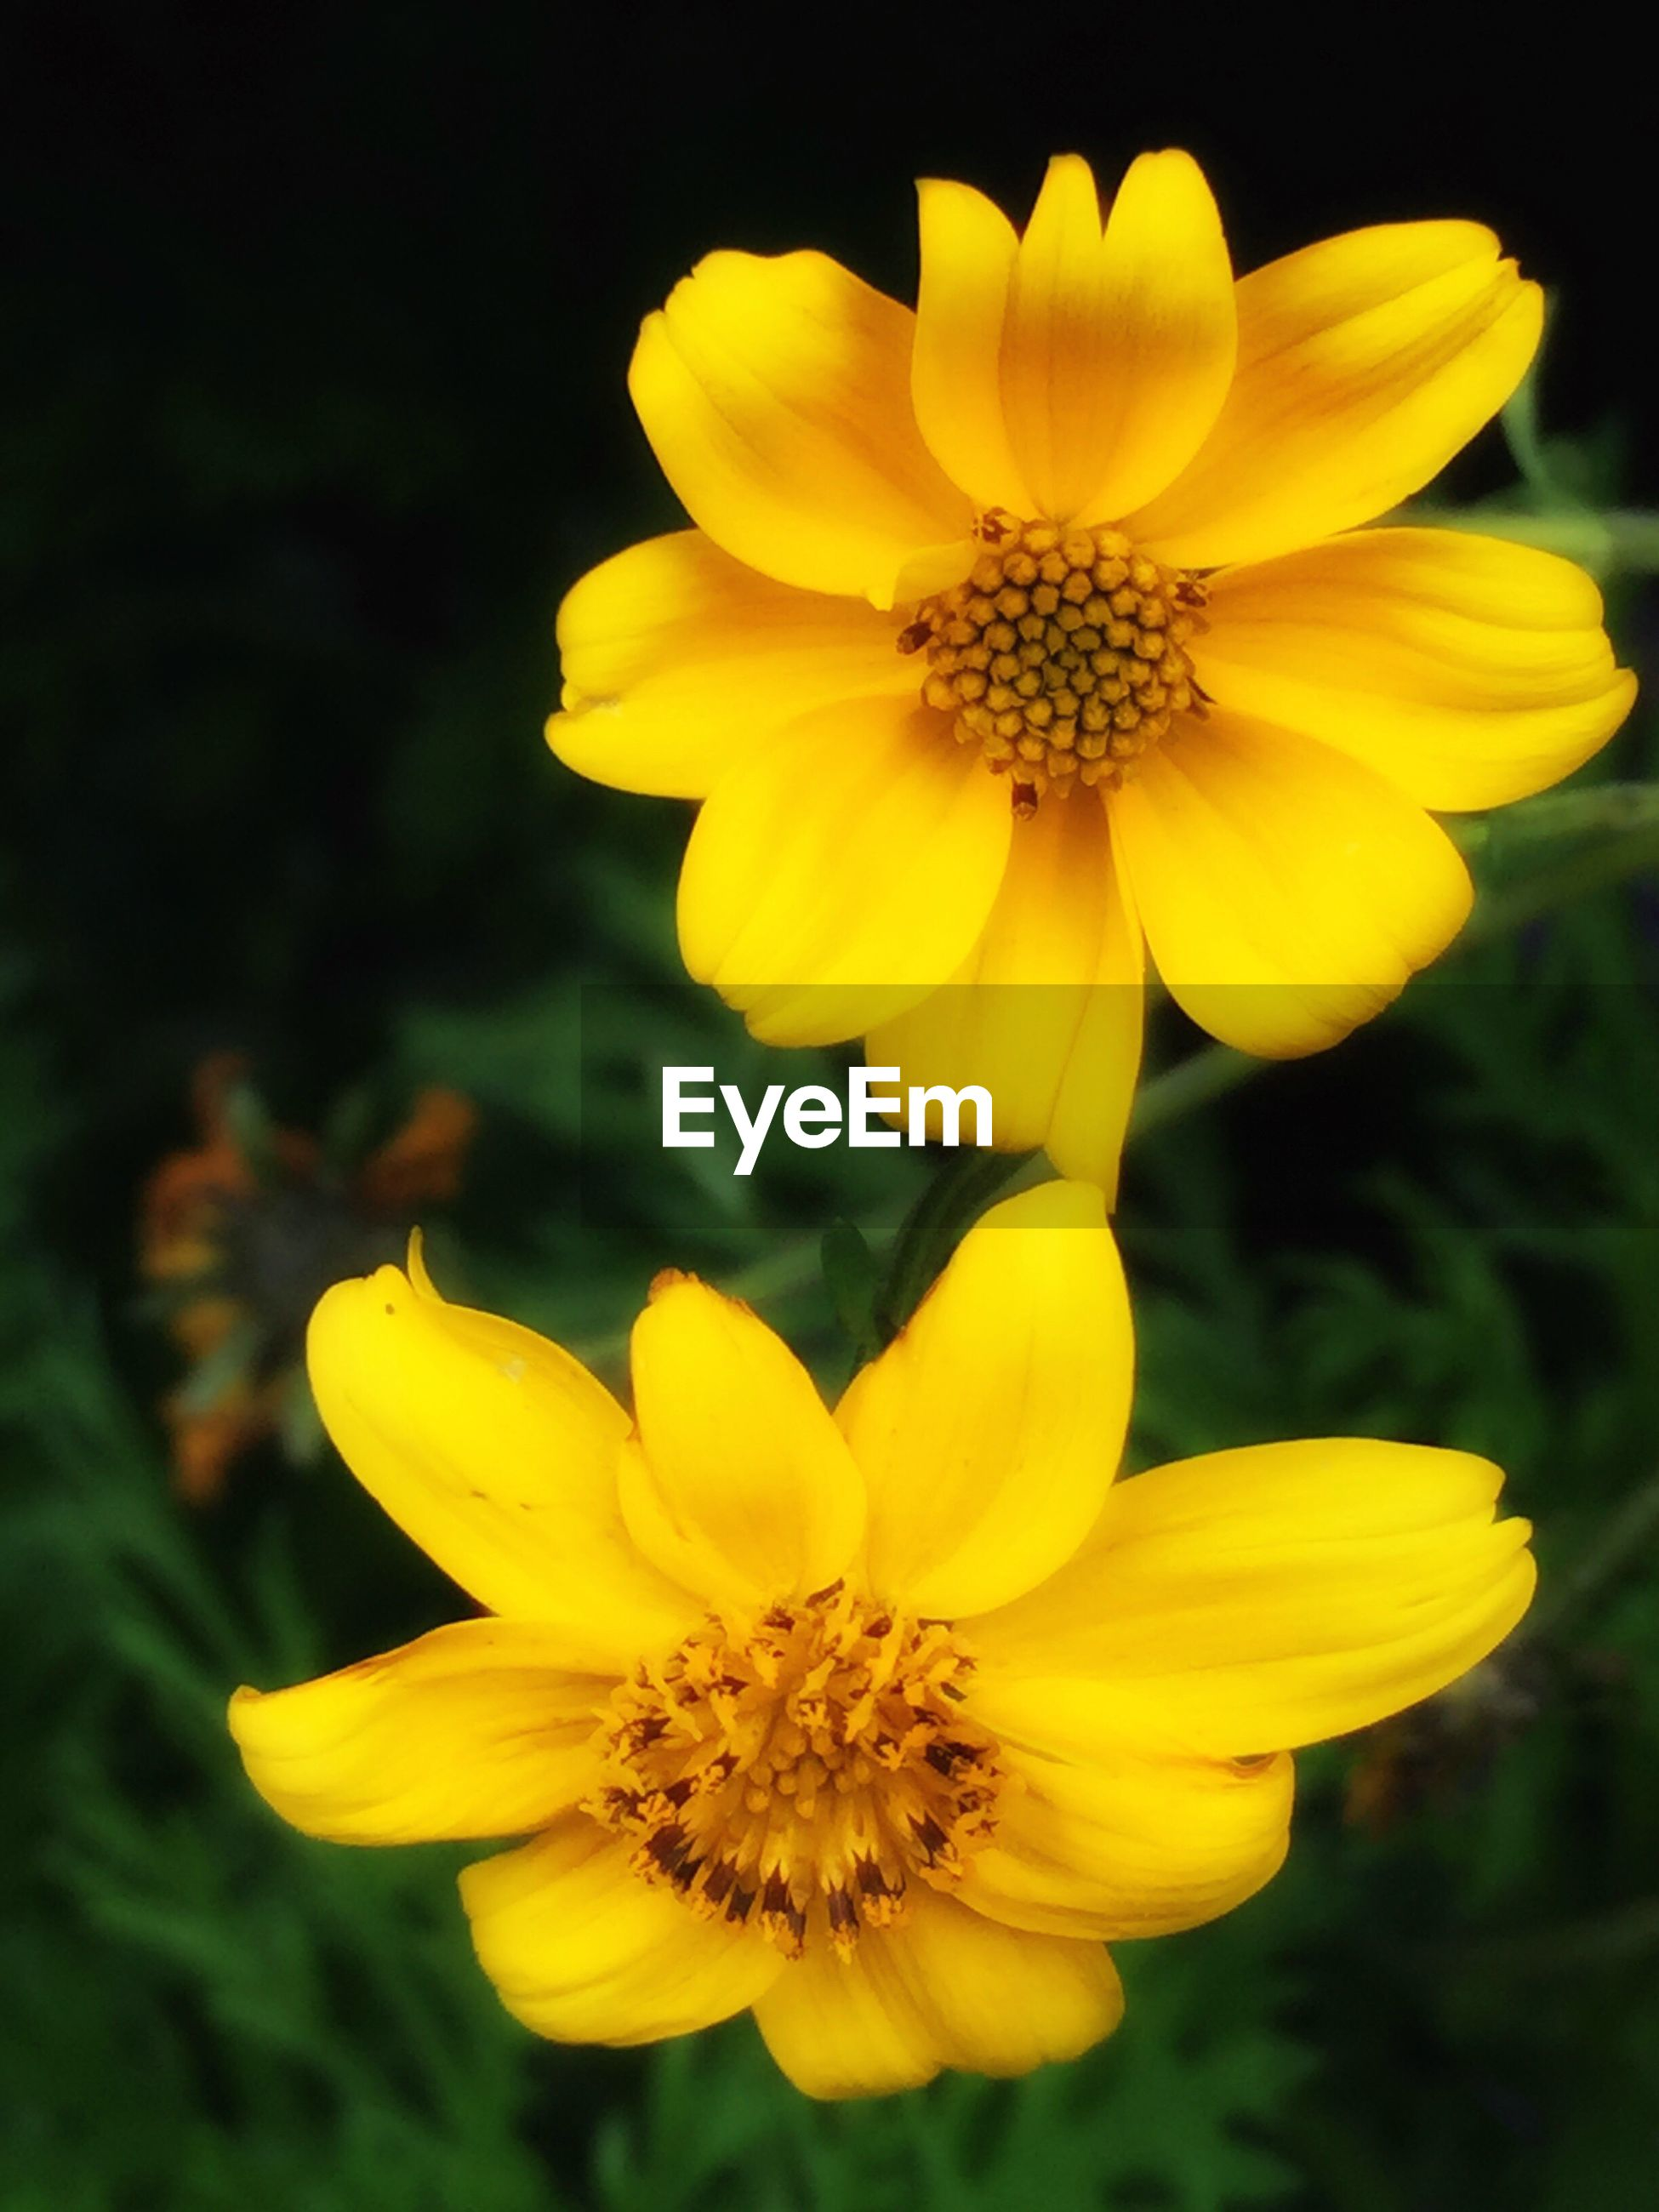 flower, yellow, petal, freshness, fragility, flower head, growth, beauty in nature, close-up, blooming, focus on foreground, nature, plant, pollen, in bloom, park - man made space, vibrant color, outdoors, no people, blossom